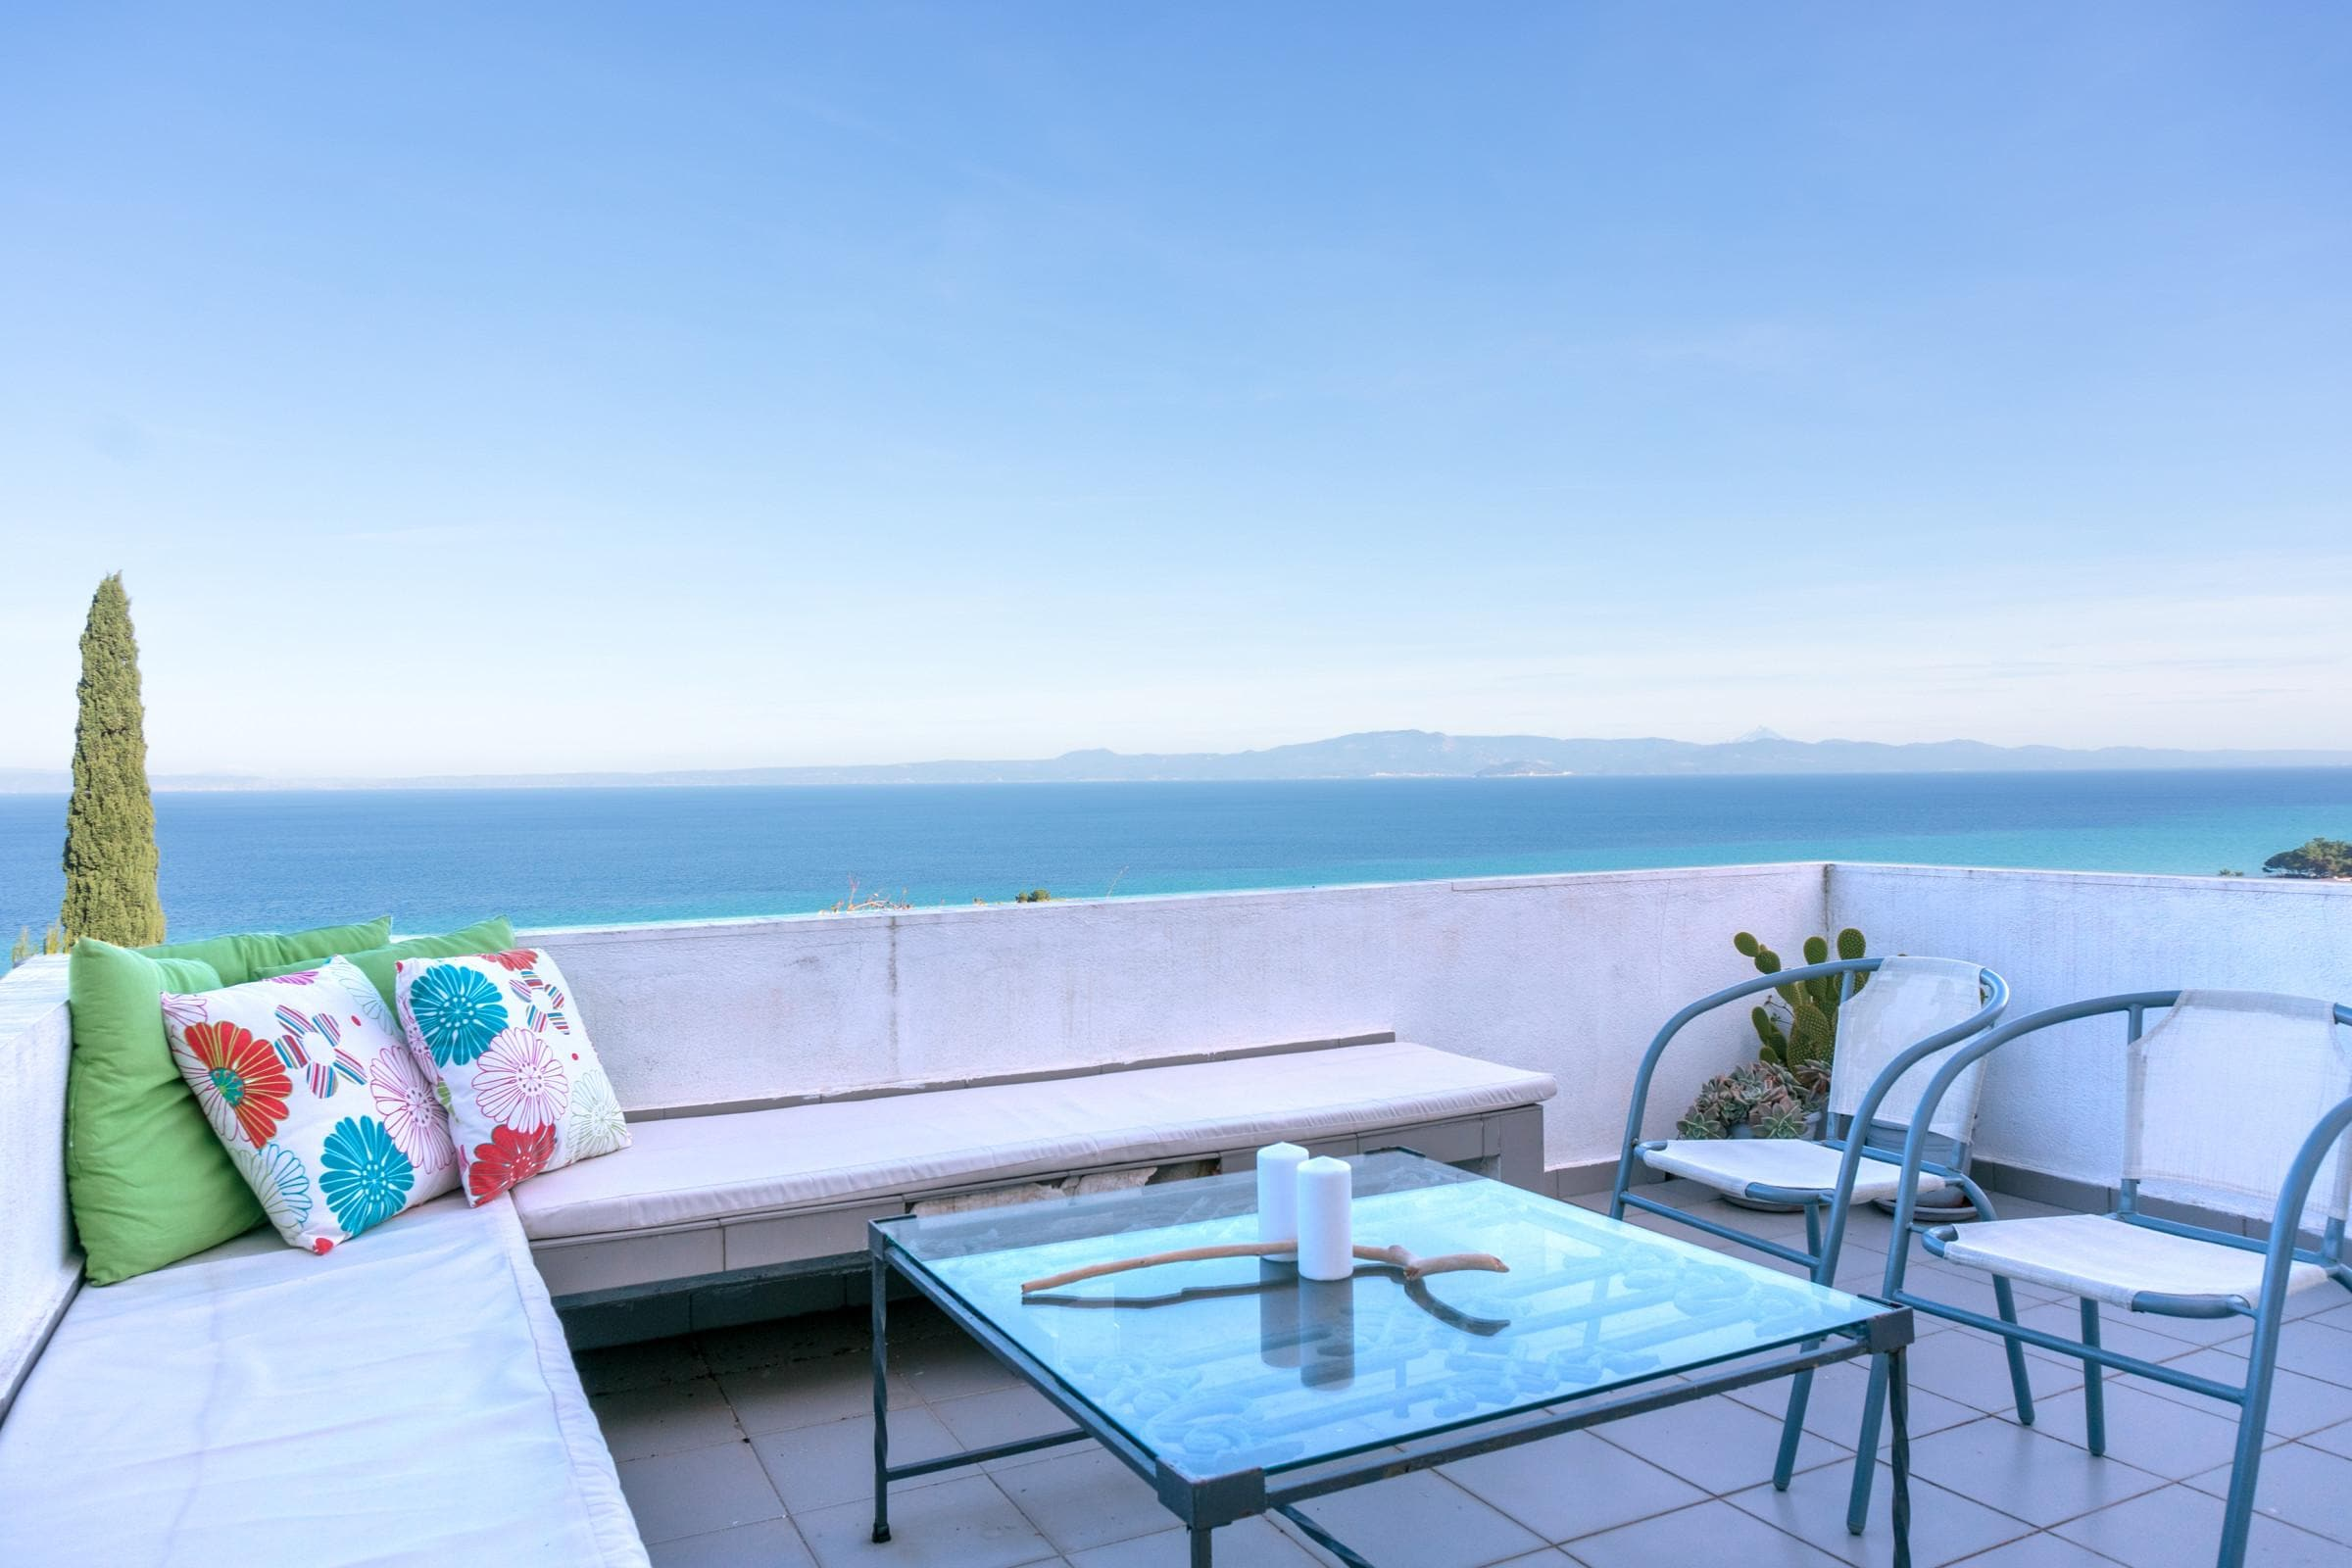 Property Image 2 - Penthouse Suite with Great Ocean Views